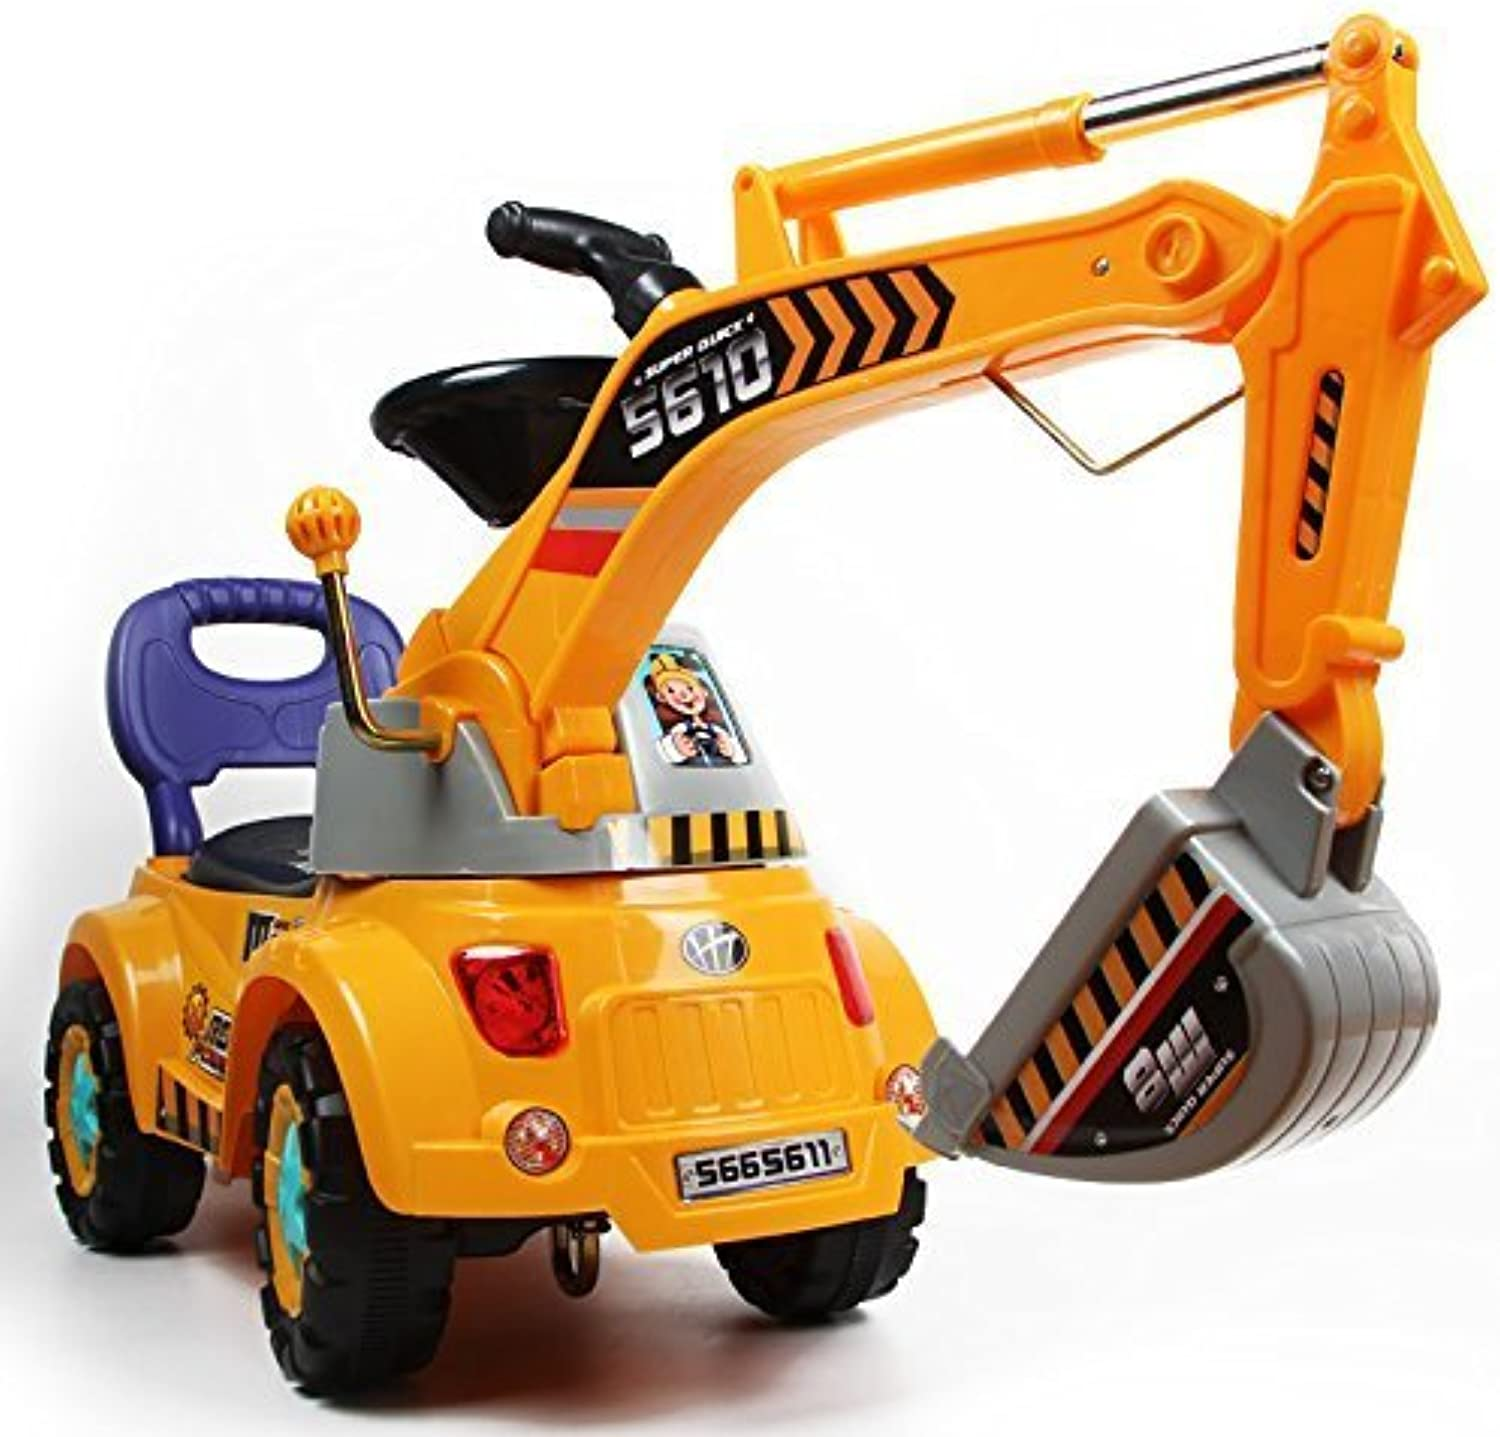 POCO DIVO Digger scooter, Rideon excavator, Pulling cart, Pretend play construction truck (color may vary)